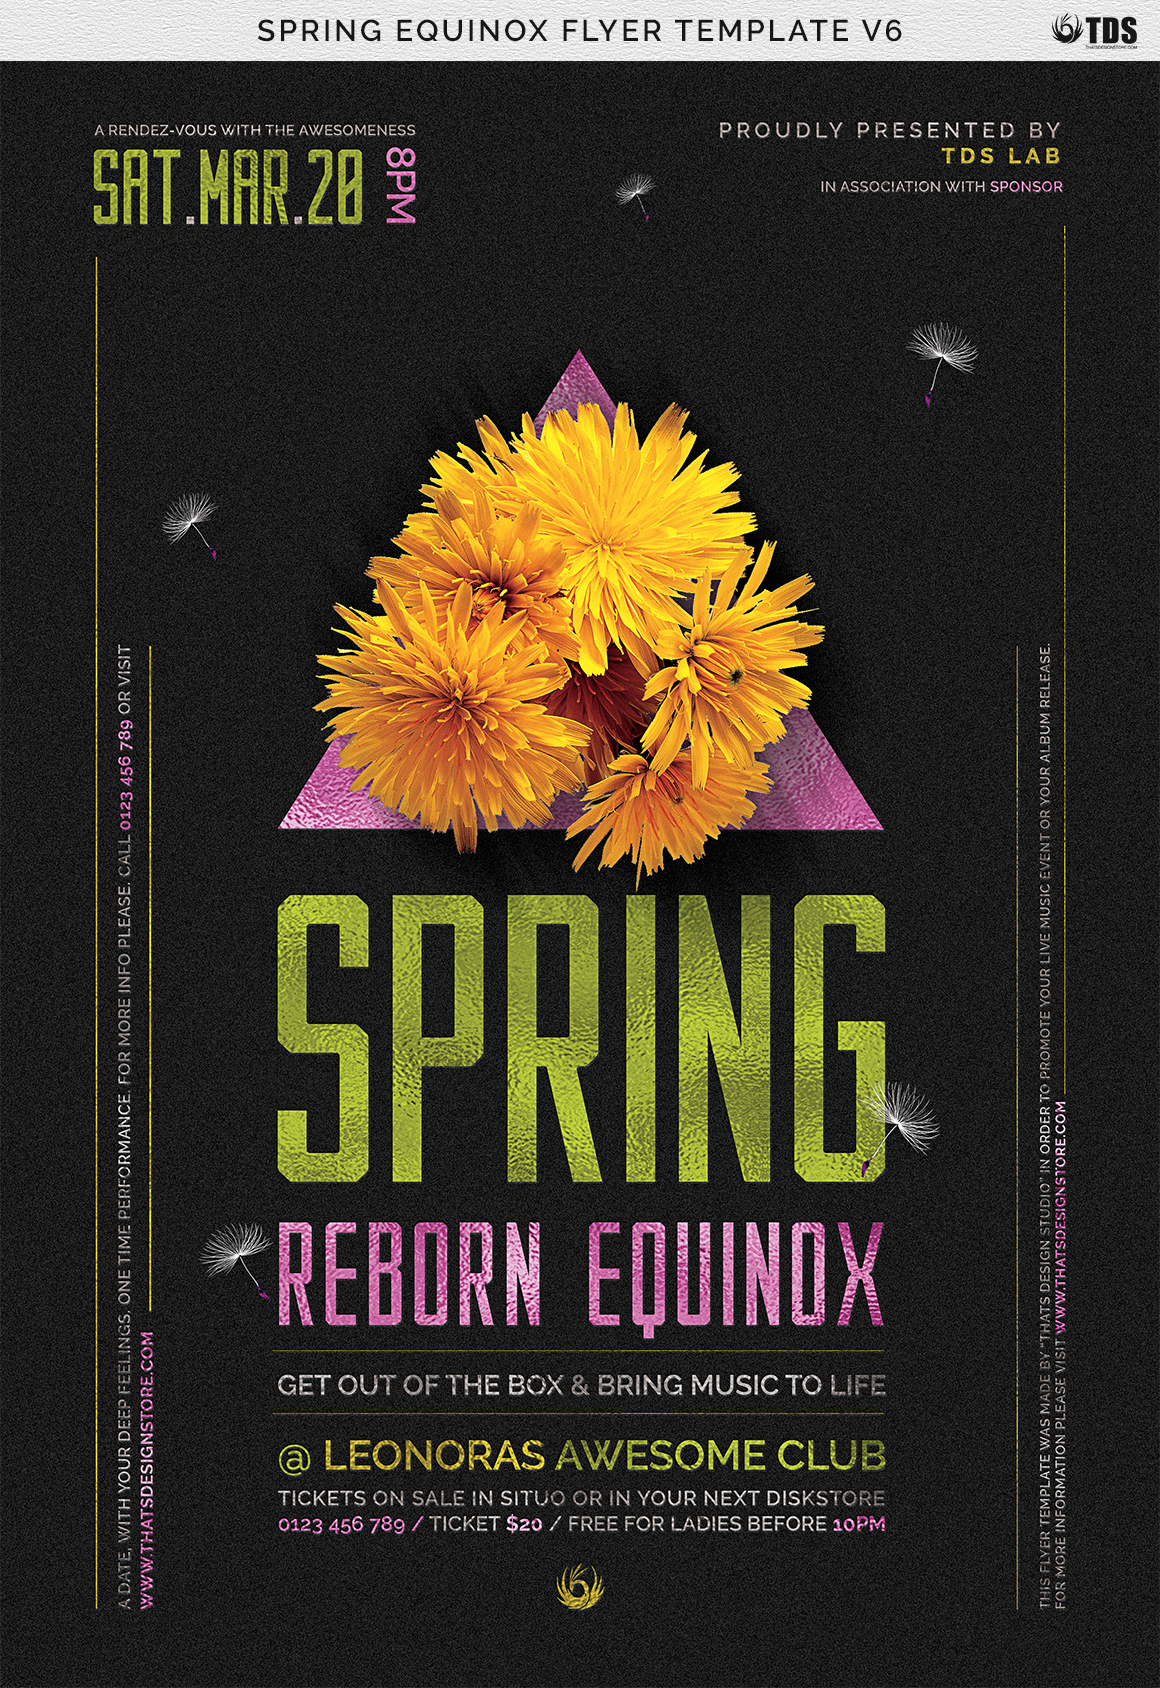 Spring Equinox Flyer Template V6 example image 7